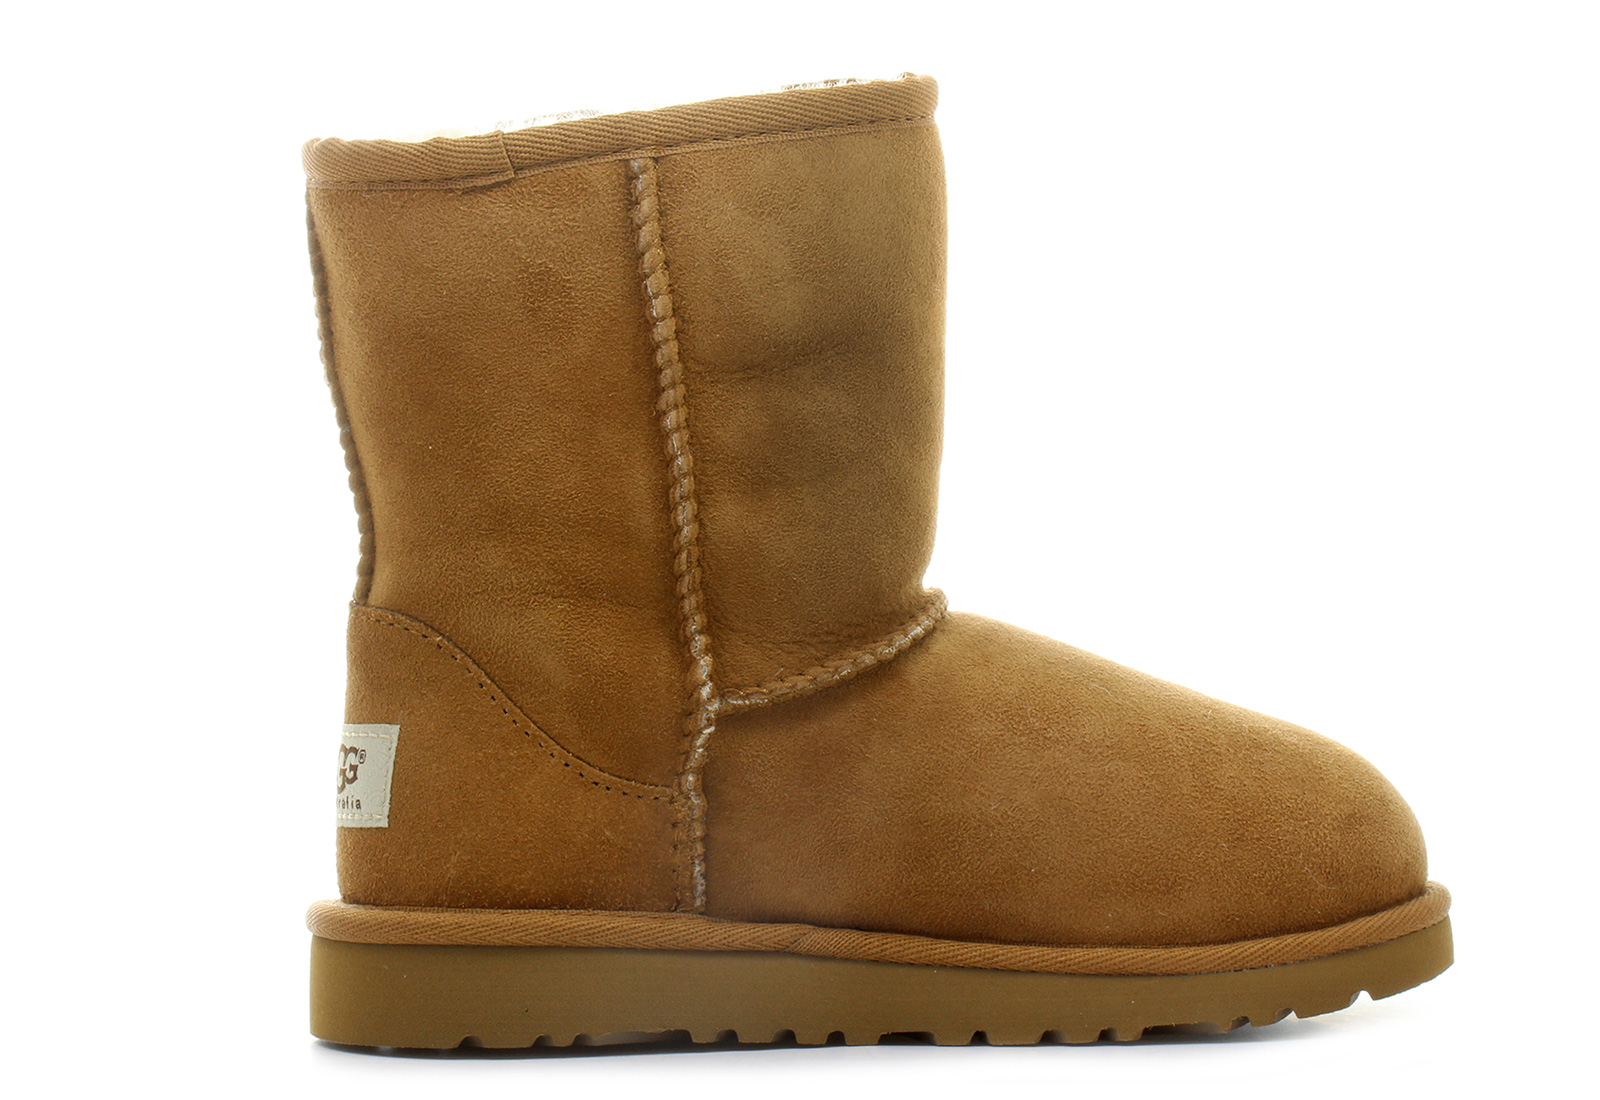 1a43a2b6e Ugg Boots - K Classic Short - 5251-CHE - Online shop for sneakers ...